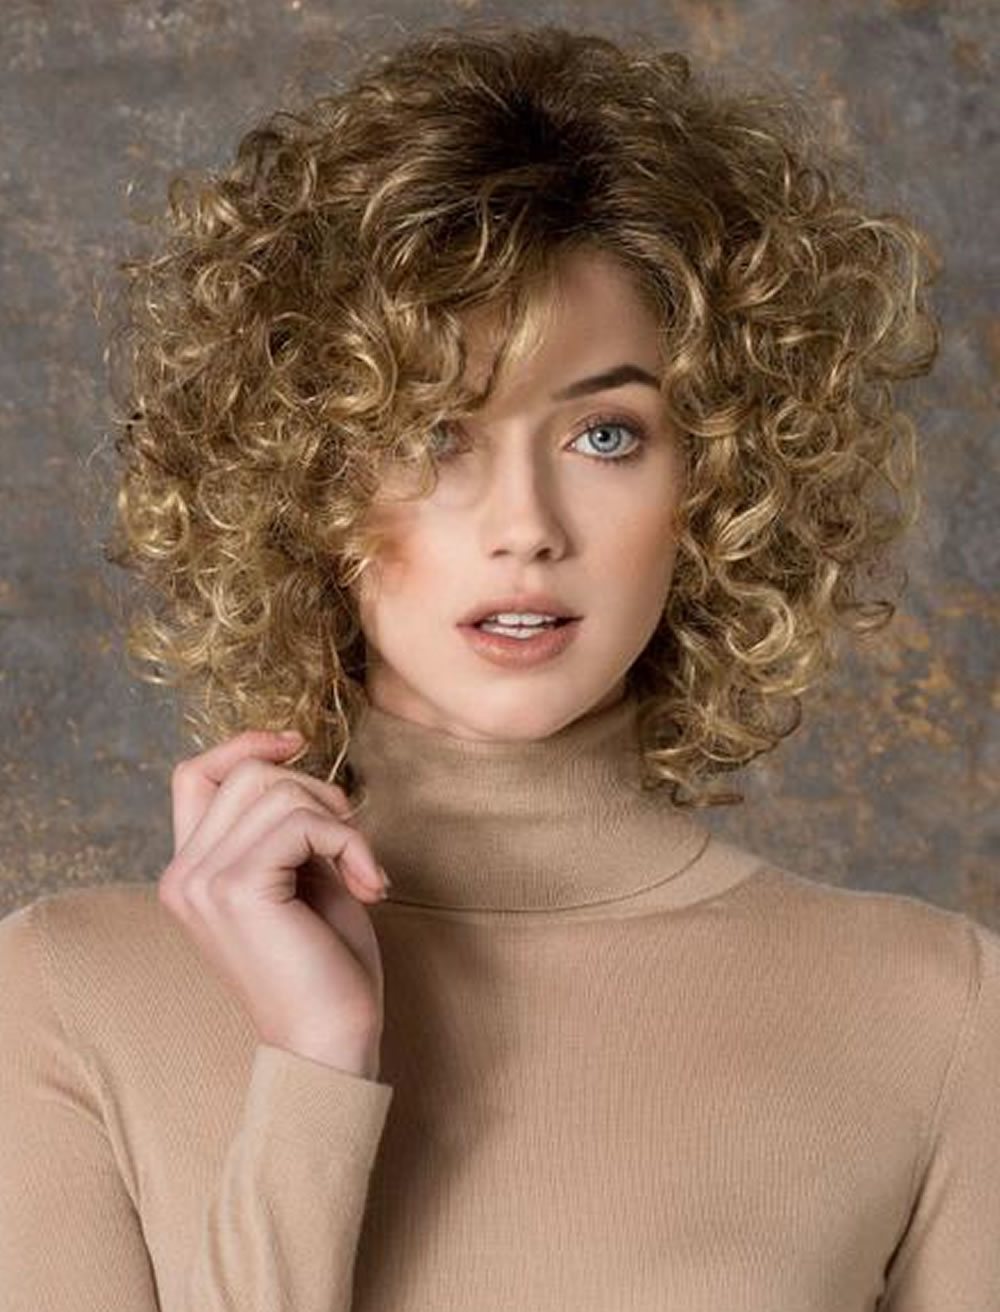 Best Medium Short Curly Hairstyles of 2018 - Short and Curly Haircuts